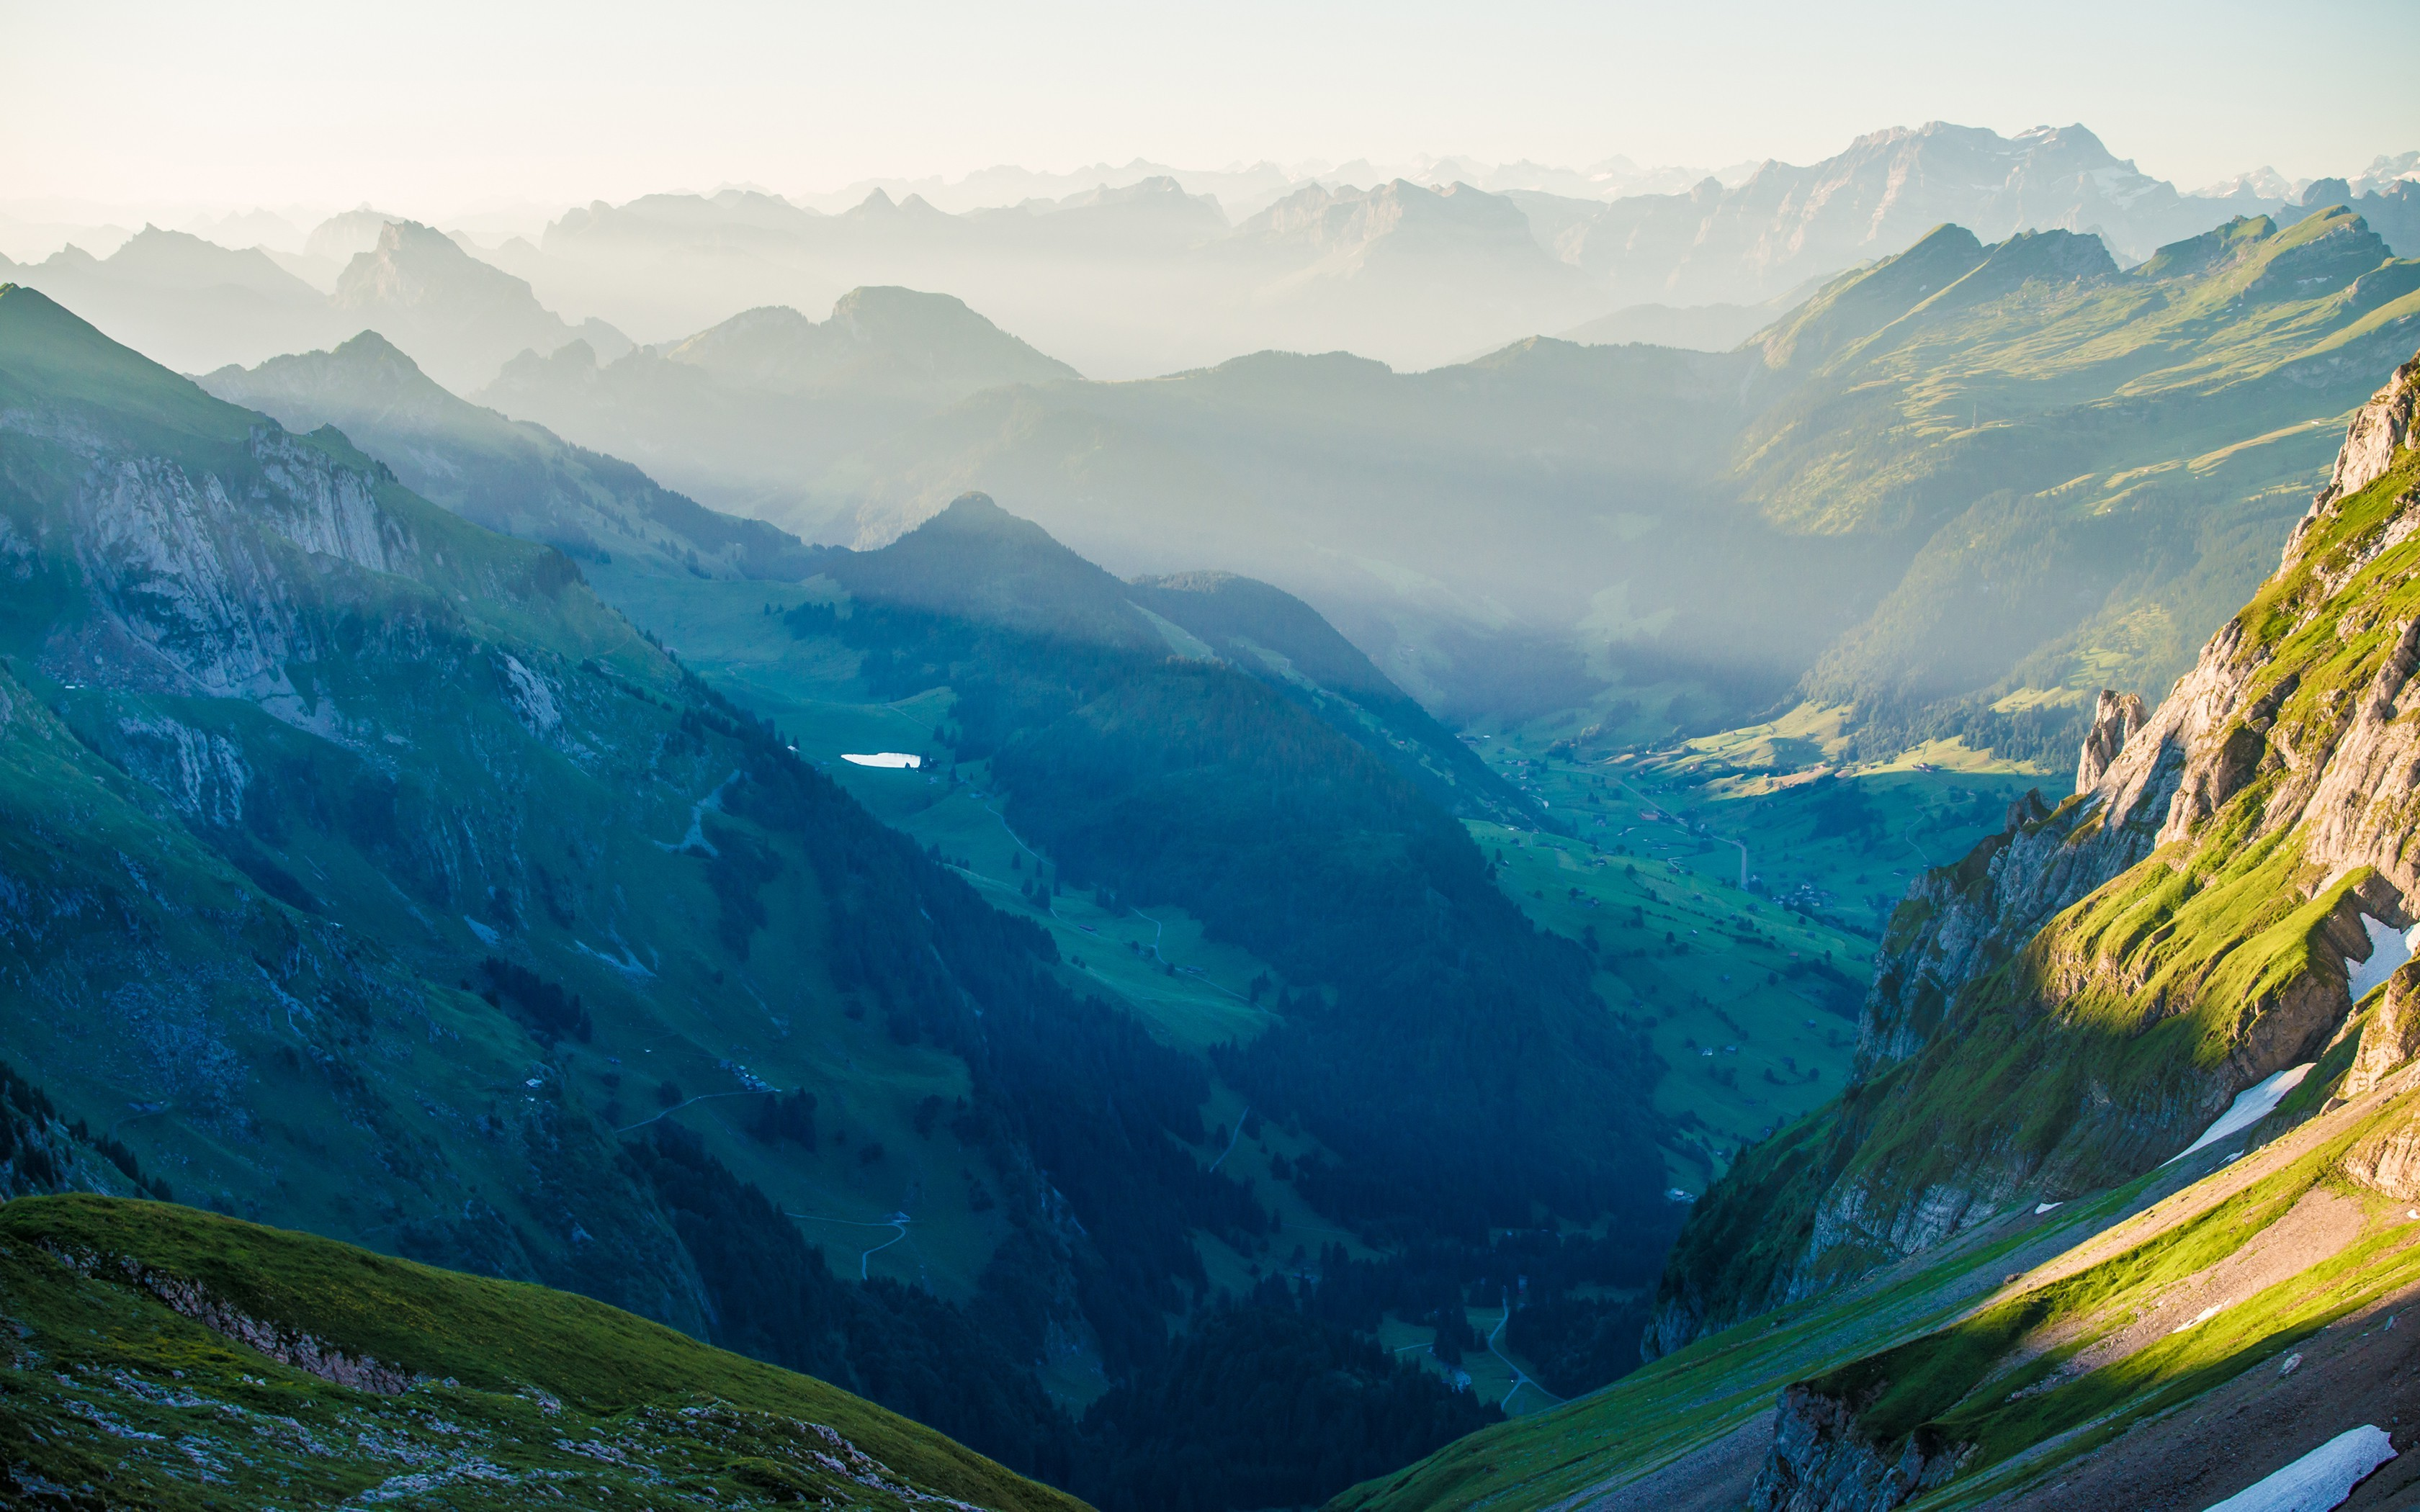 Full Hd 3d Wallpapers 1920x1080 Free Download For Mobile Nature Landscape Mountain Mist Sunrise Switzerland